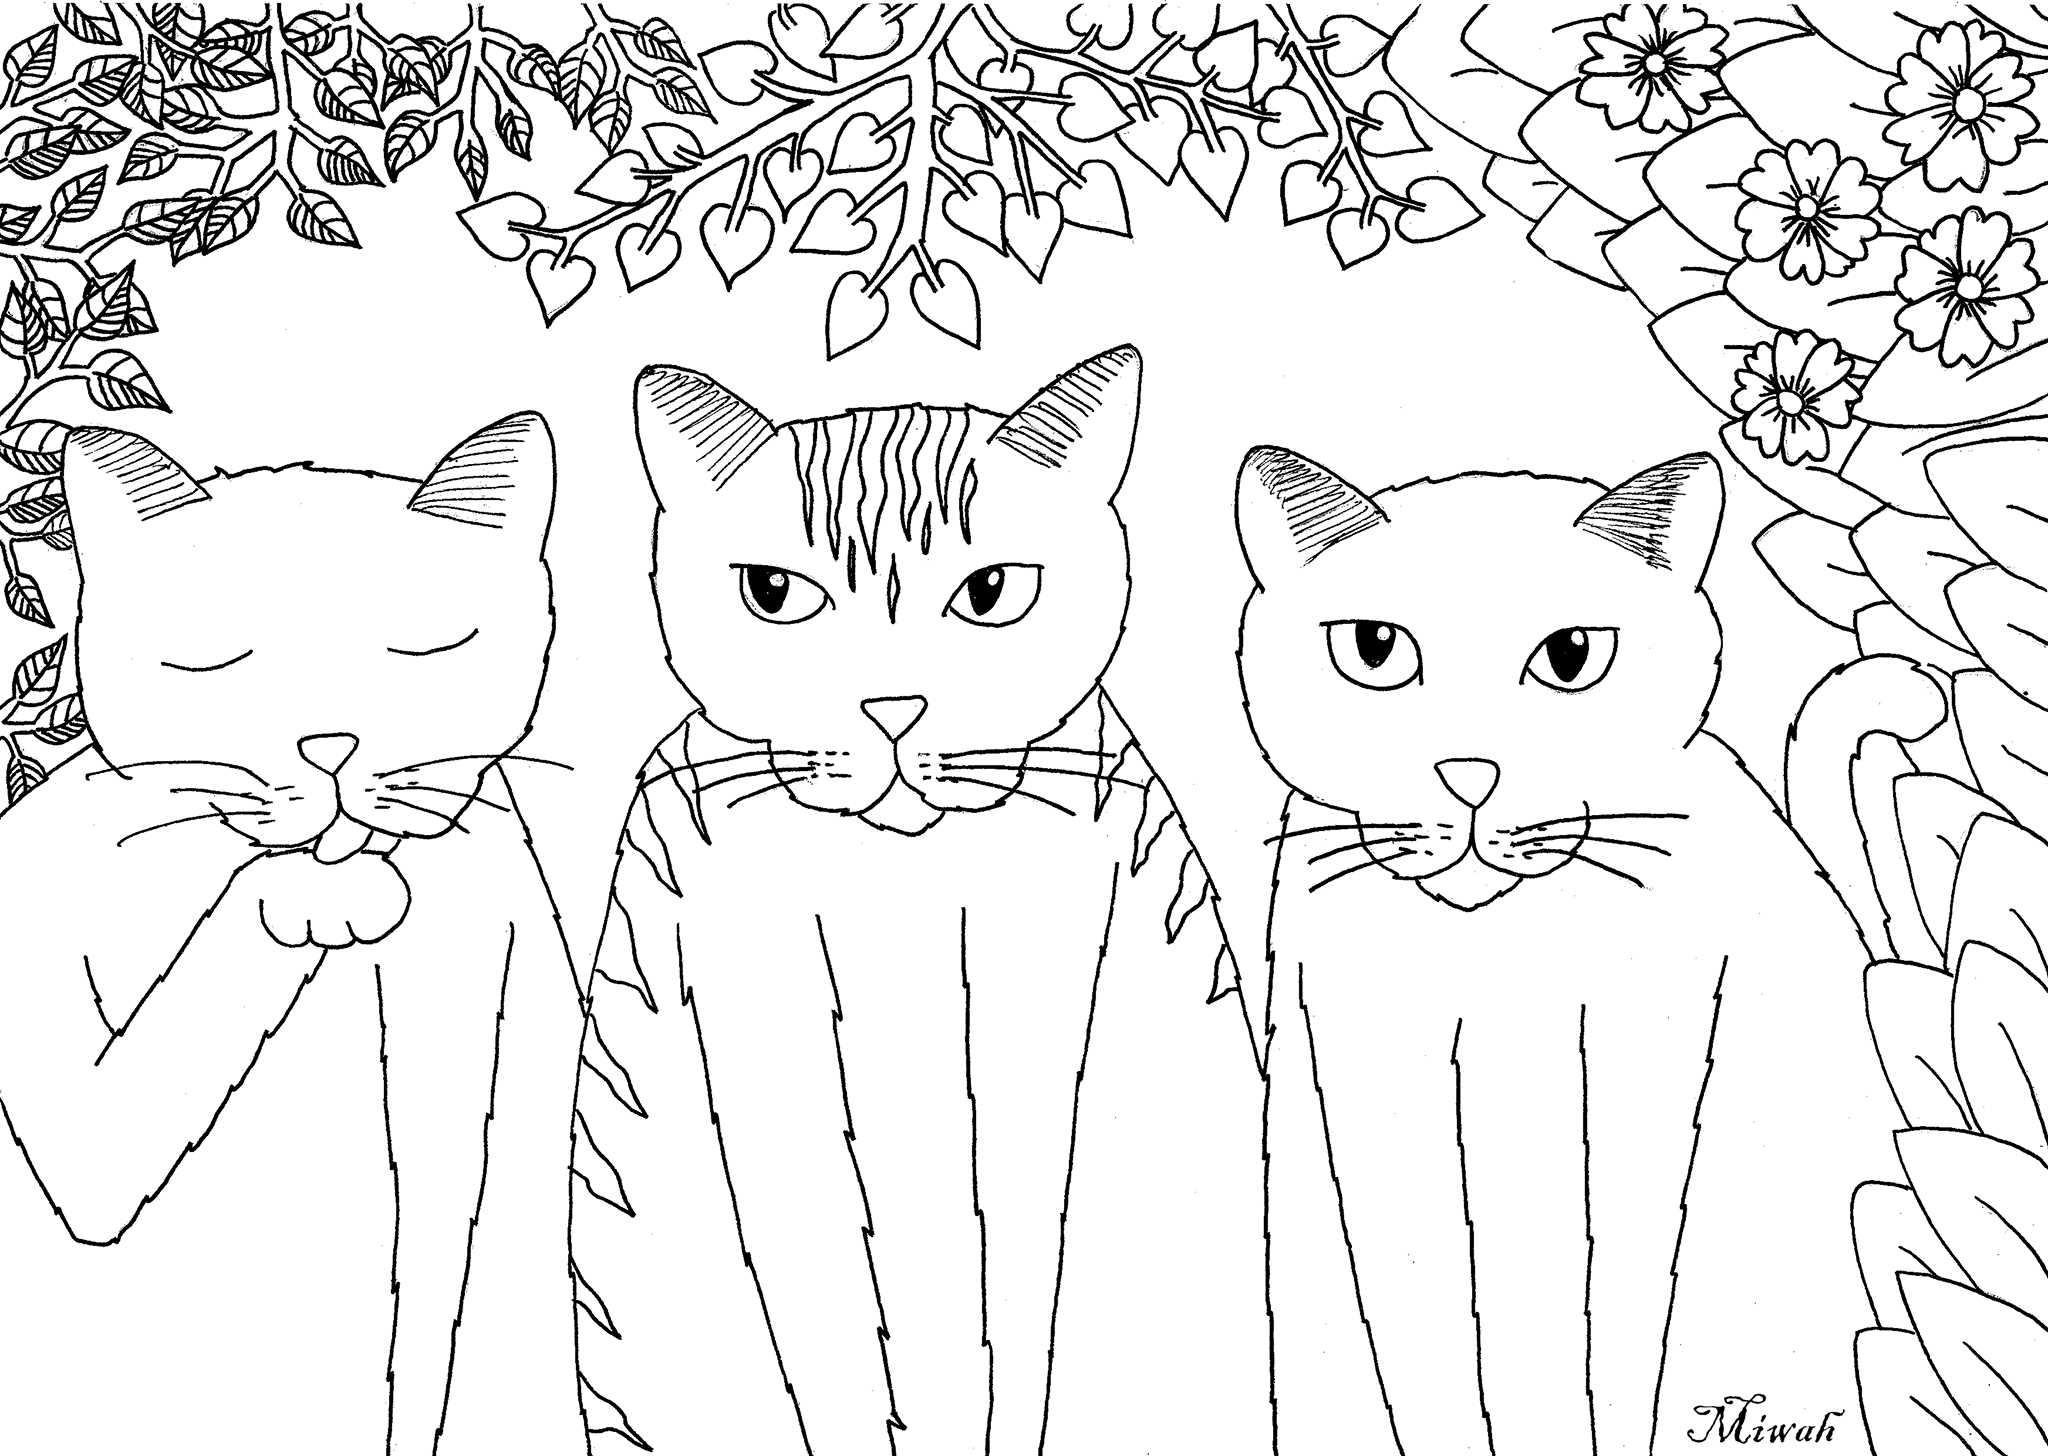 tree little funny cats by miwah animals coloring pages for